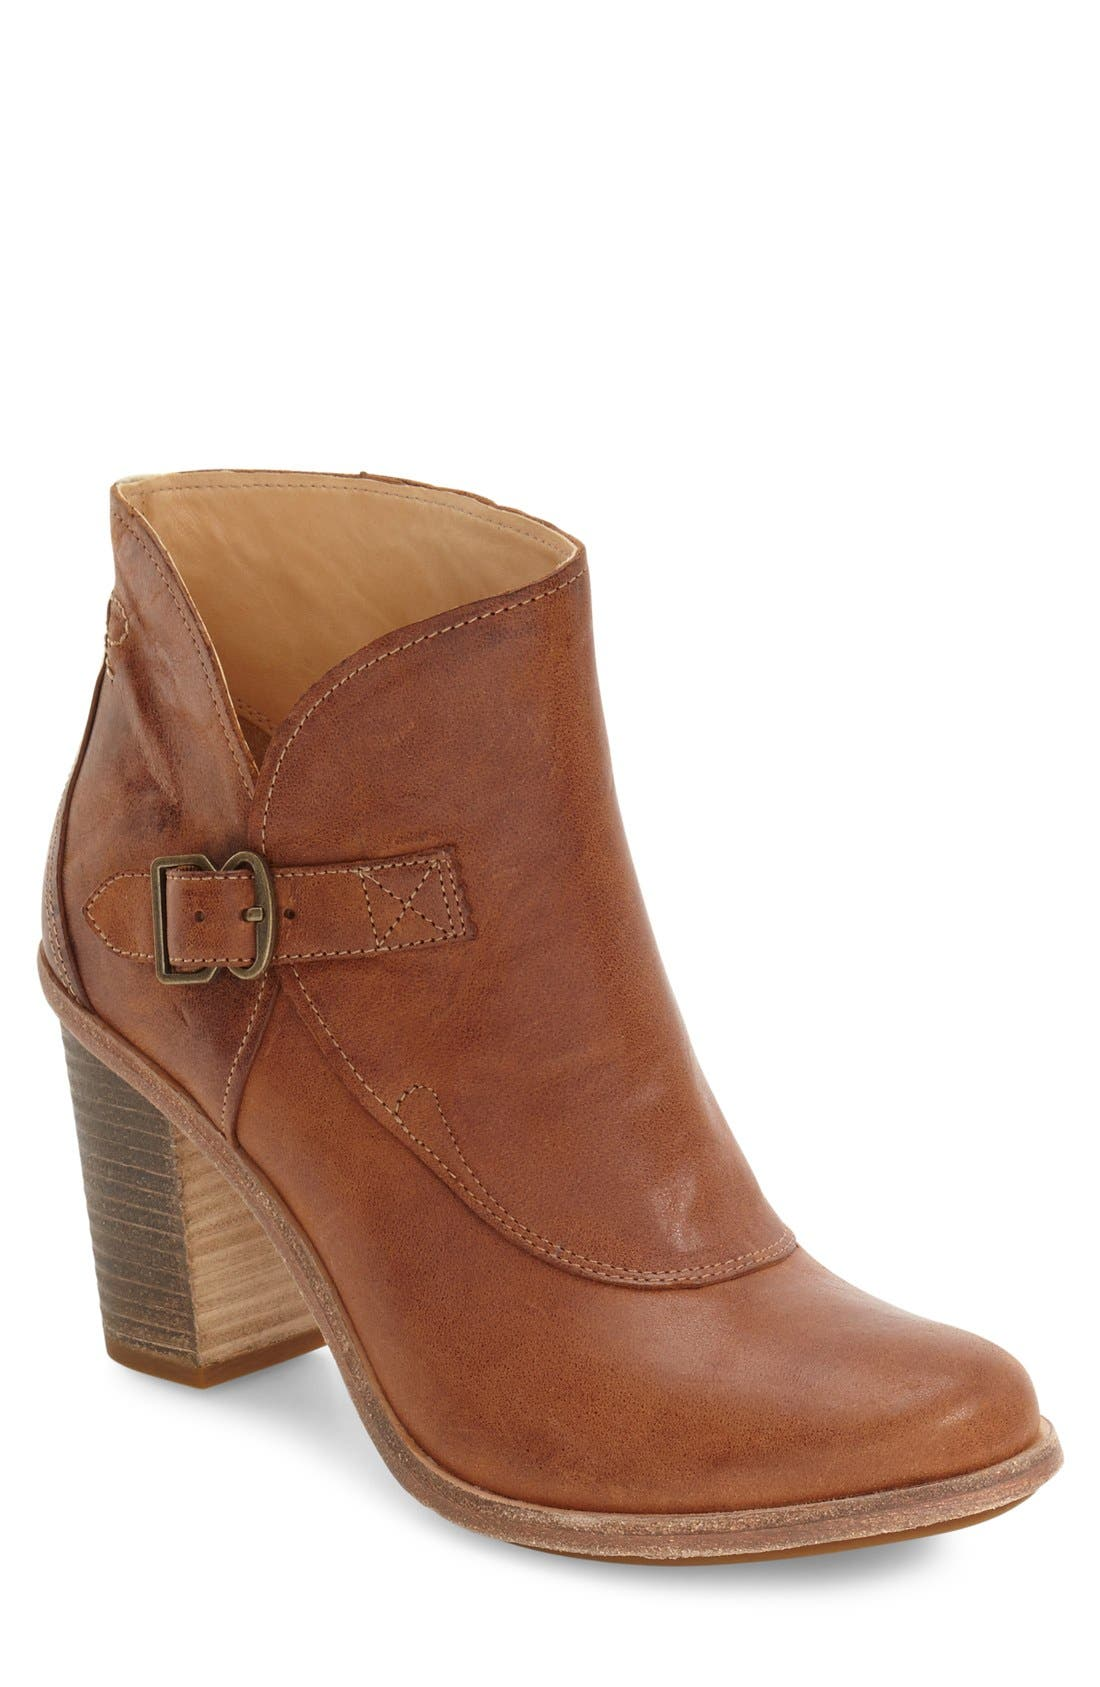 Main Image - Timberland 'Marge' Bootie (Women)